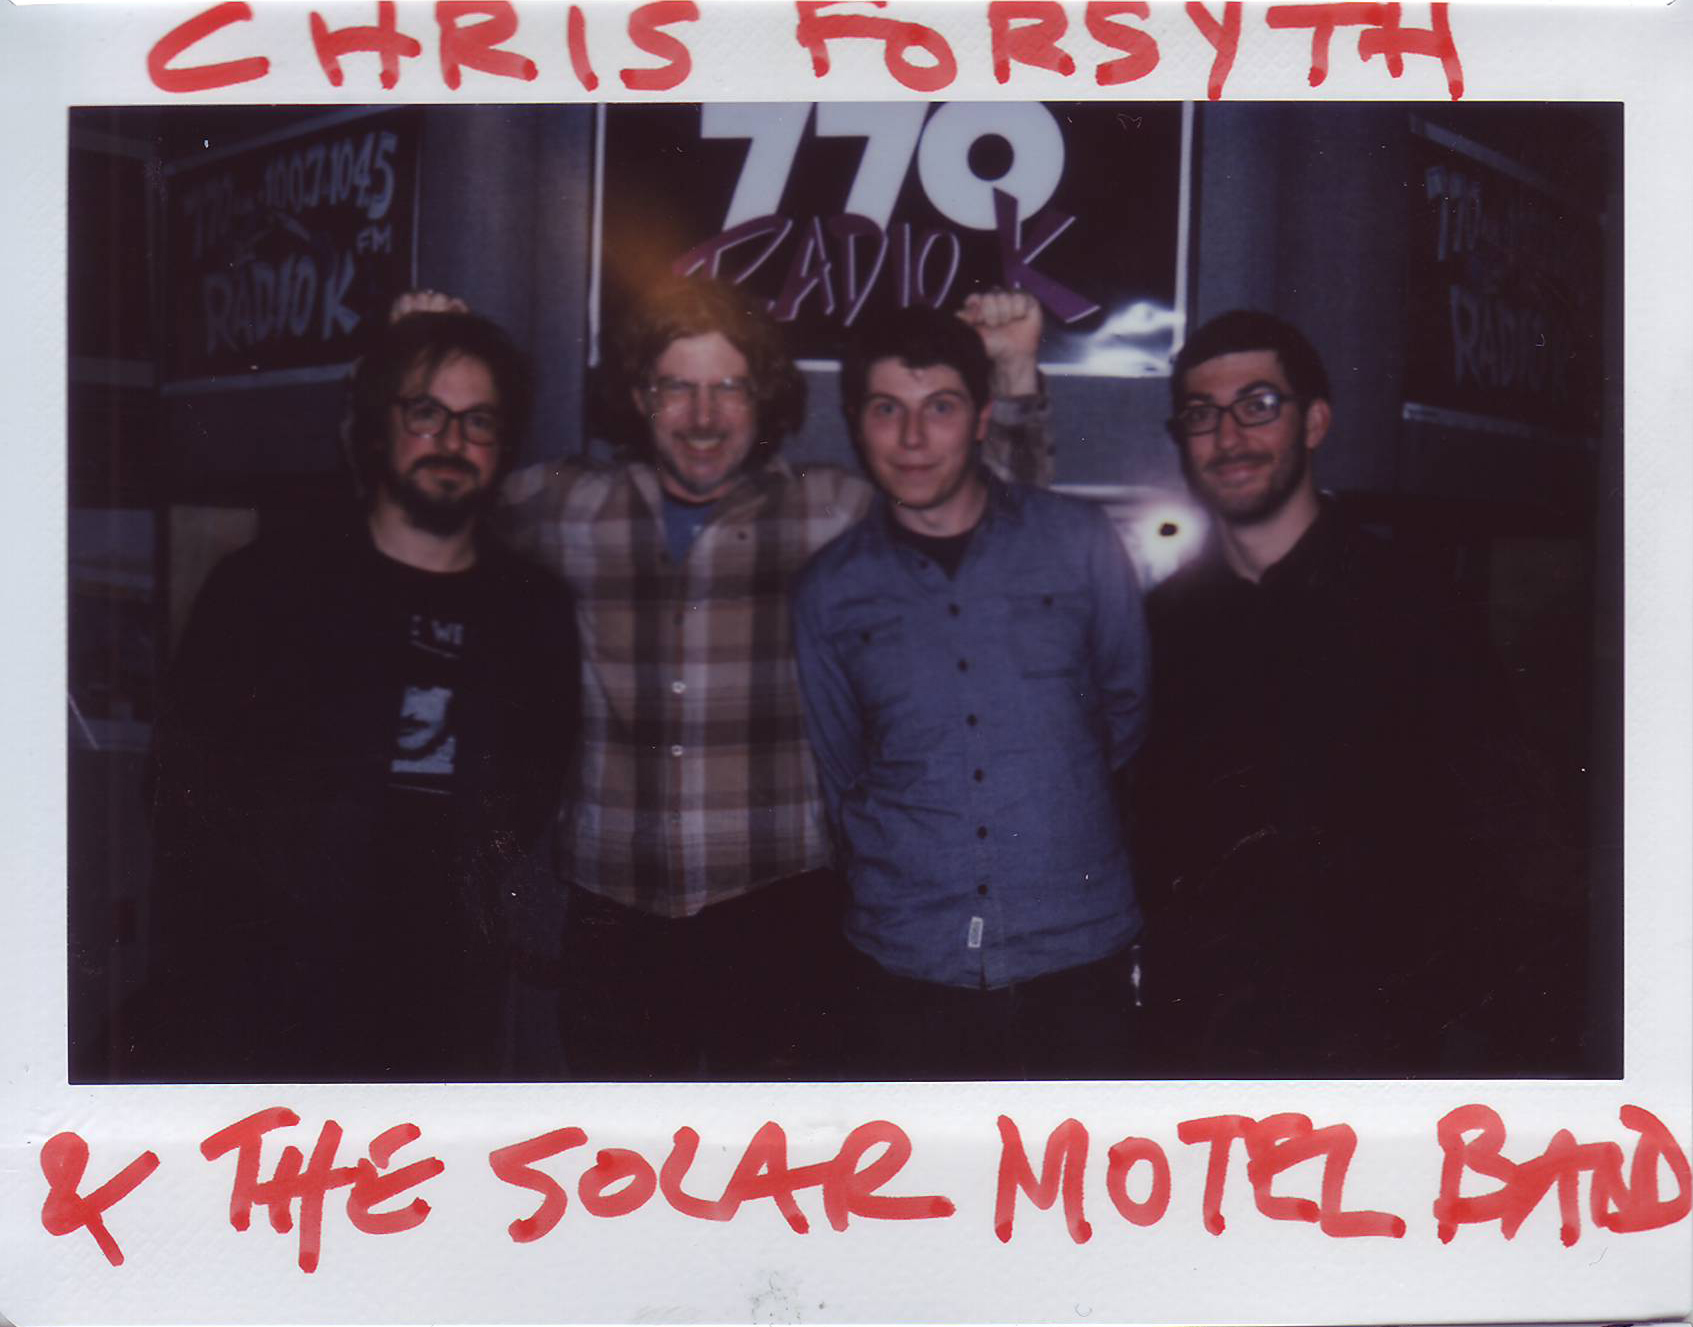 Chris Forsyth and the Solar Motel Band